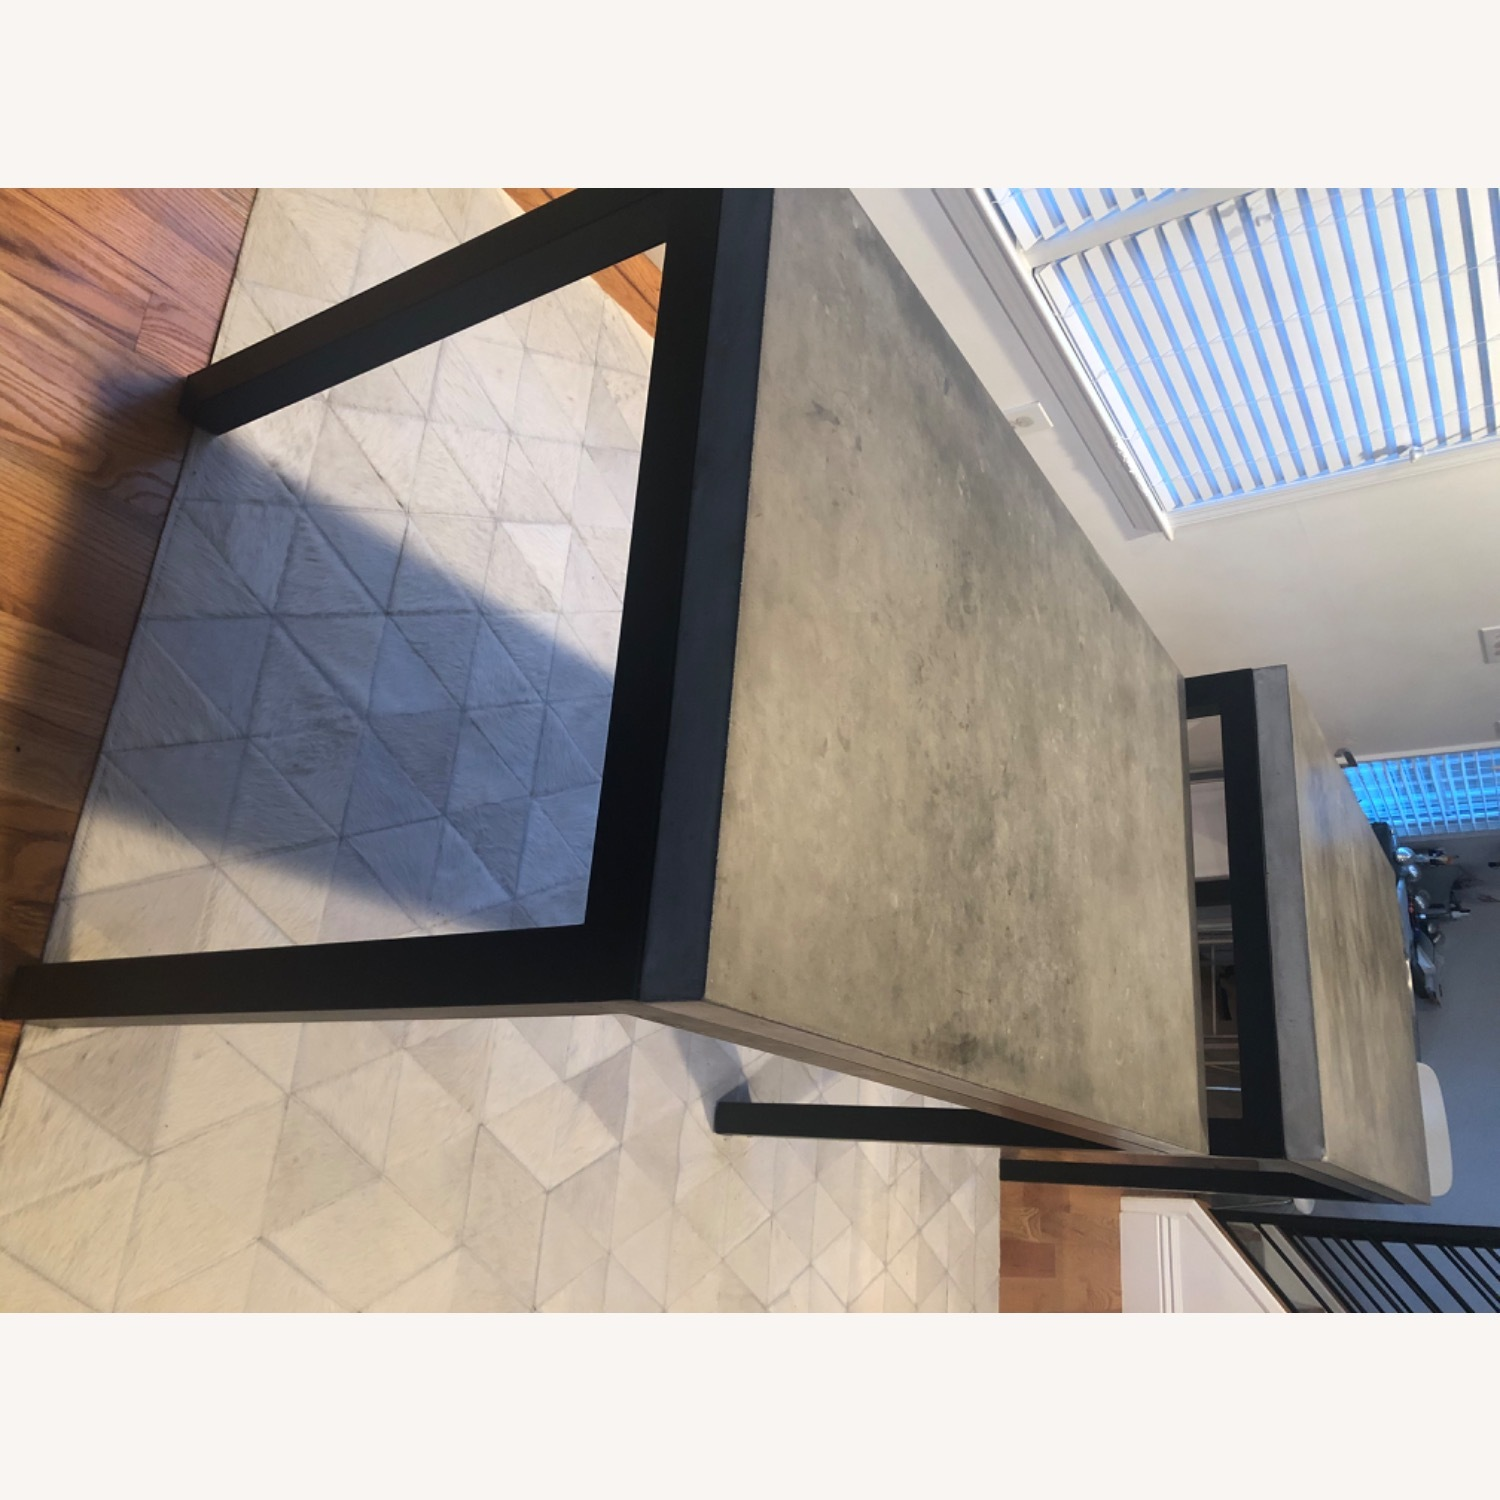 Crate & Barrel 2 Concrete Dining Tables - image-10